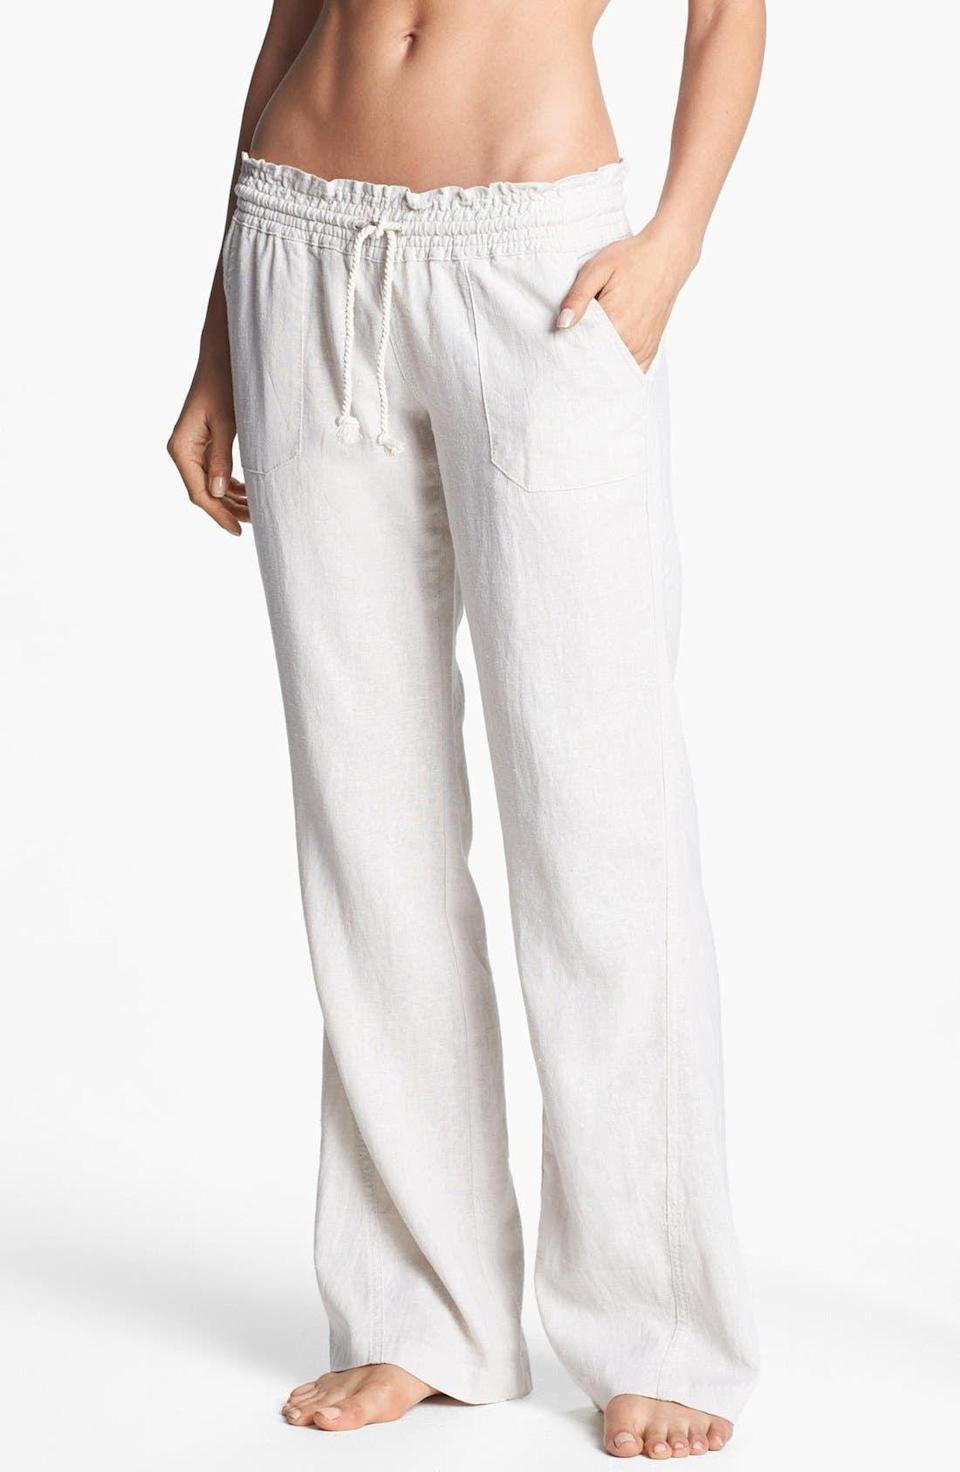 """<p><strong>Roxy </strong></p><p>nordstrom.com</p><p><strong>$39.50</strong></p><p><a href=""""https://go.redirectingat.com?id=74968X1596630&url=https%3A%2F%2Fwww.nordstrom.com%2Fs%2Froxy-oceanside-linen-blend-beach-pants%2F5634652&sref=https%3A%2F%2Fwww.townandcountrymag.com%2Fstyle%2Ffashion-trends%2Fg27681571%2Fbest-beach-coverups%2F"""" rel=""""nofollow noopener"""" target=""""_blank"""" data-ylk=""""slk:Shop Now"""" class=""""link rapid-noclick-resp"""">Shop Now</a></p><p>Don a relaxed pair of drawstring linen beach pants with a bucket hat and bandeau top and you have the perfect laidback outfit for a day of fun in the sun.</p><p><strong>MORE:</strong> <a href=""""https://www.townandcountrymag.com/style/fashion-trends/g35937397/best-linen-pants/"""" rel=""""nofollow noopener"""" target=""""_blank"""" data-ylk=""""slk:Stylish Linen Pants for Women"""" class=""""link rapid-noclick-resp"""">Stylish Linen Pants for Women </a></p>"""